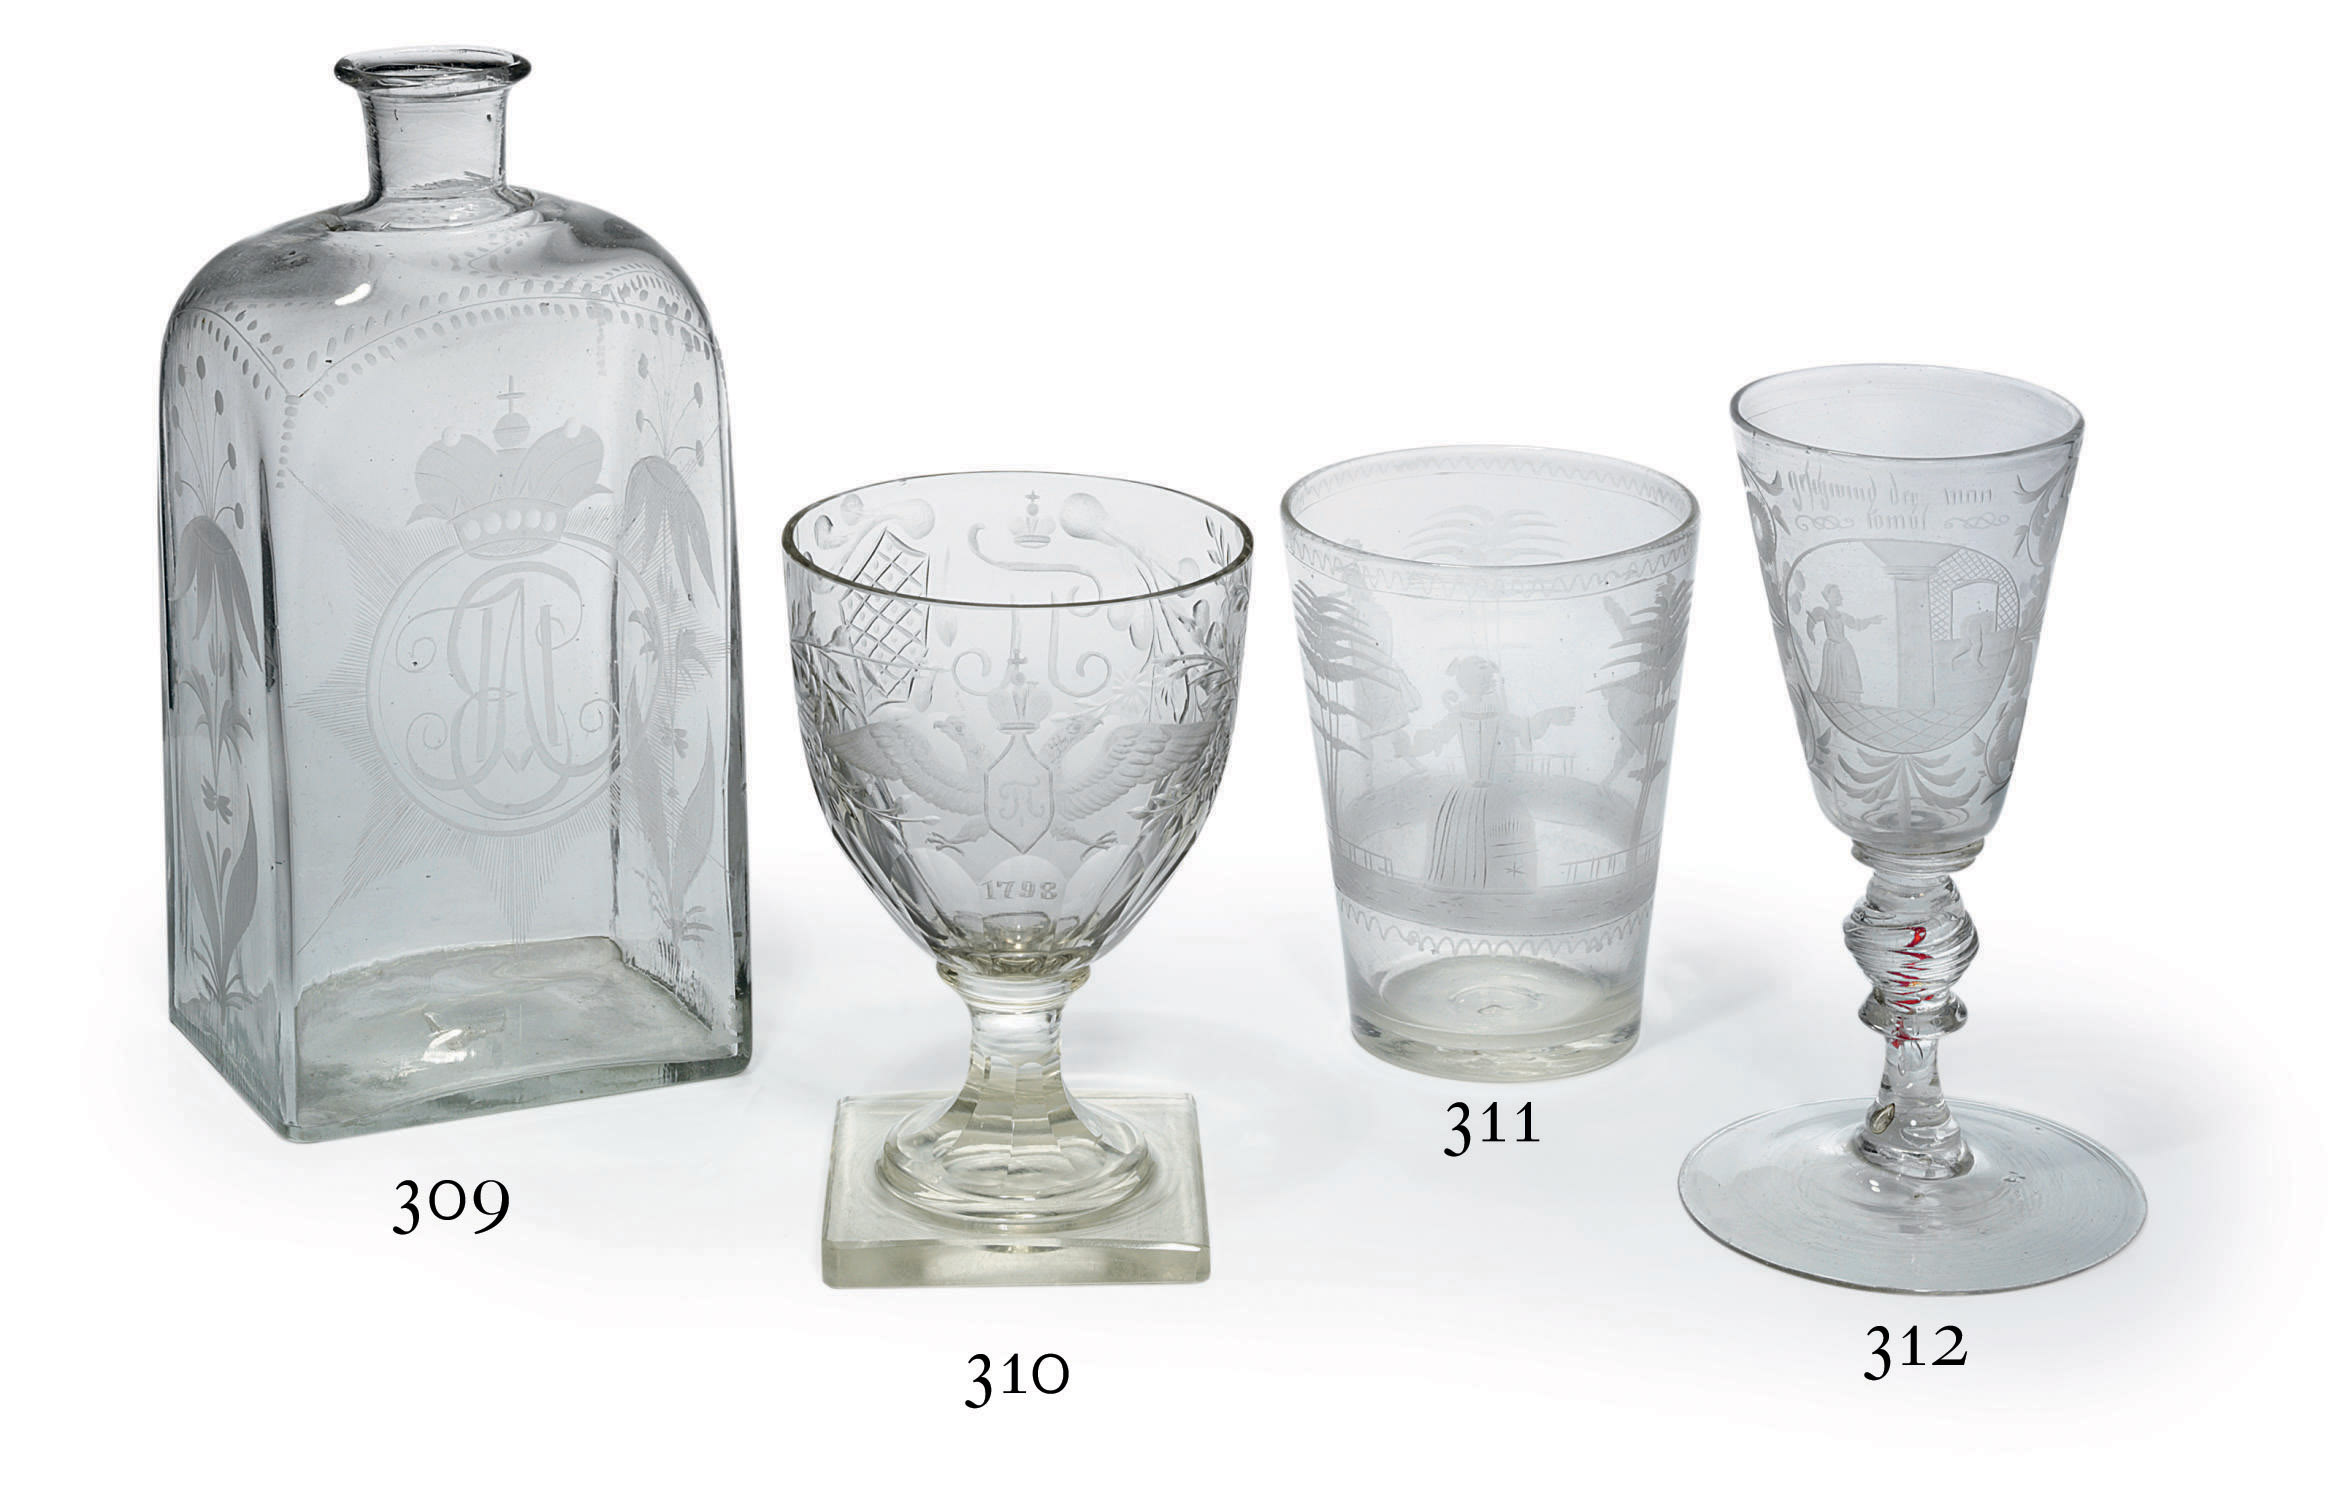 A Very Rare Clear Glass Etched Tumbler